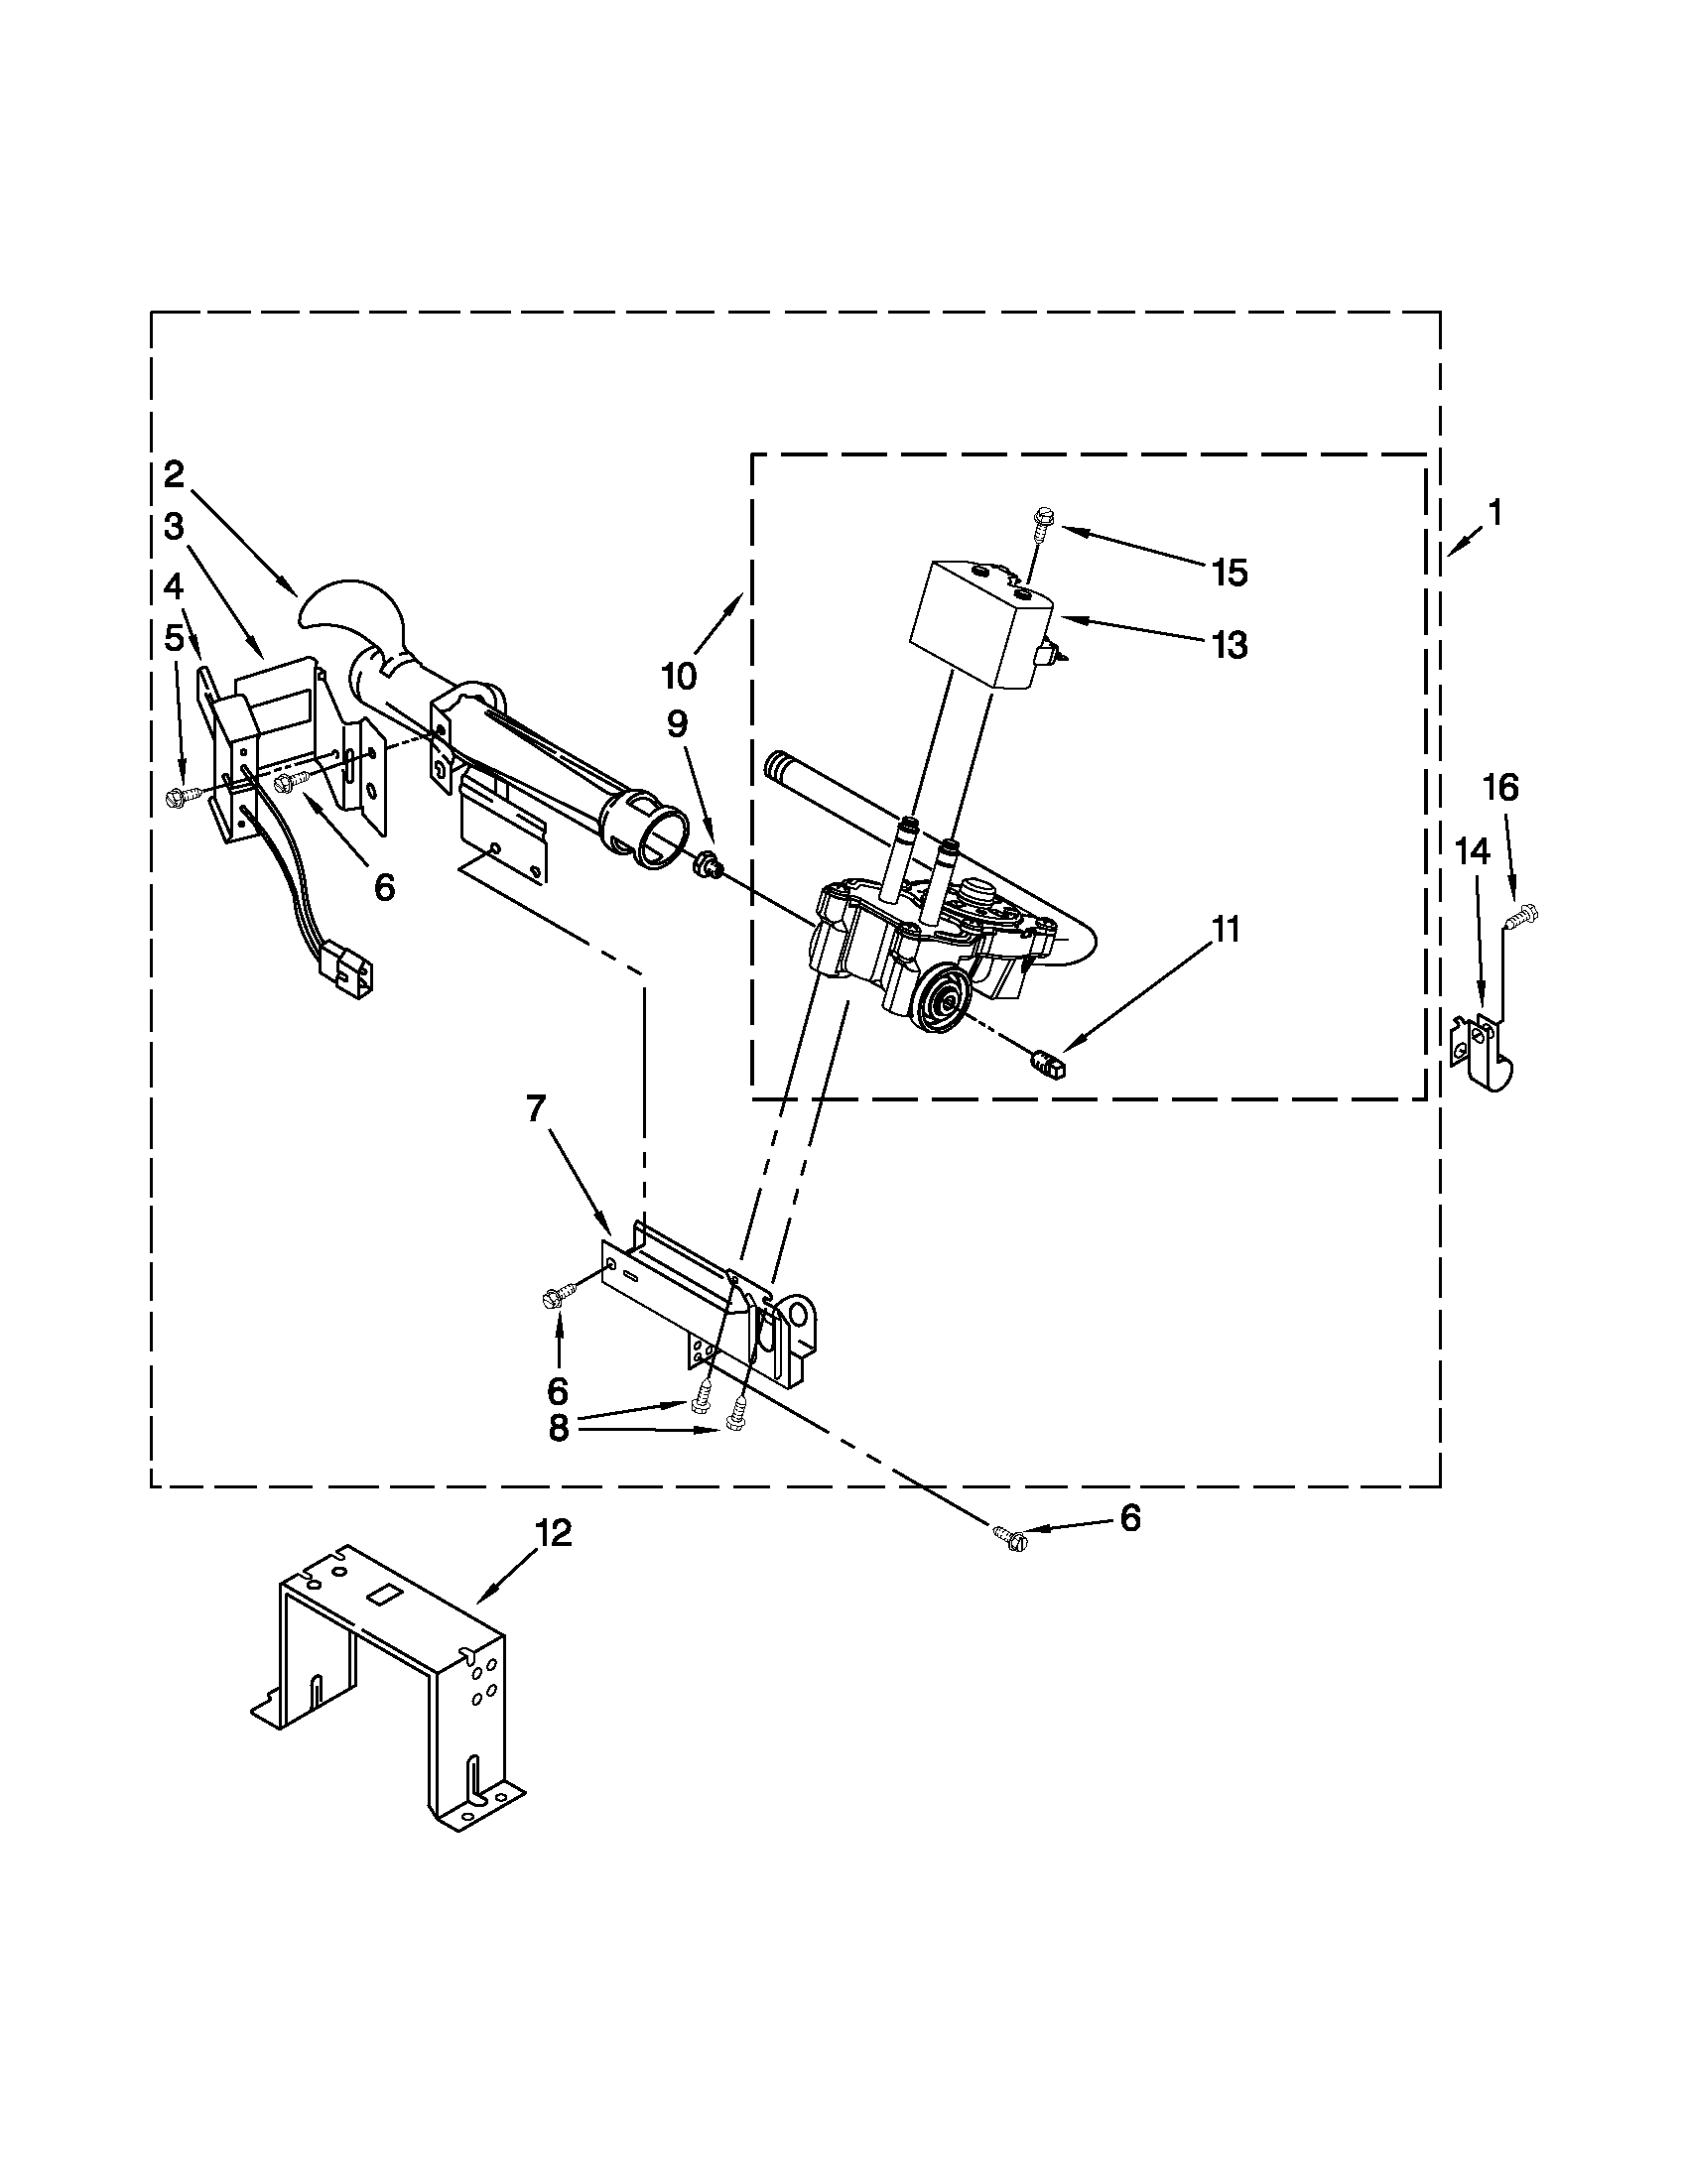 Maytag MGD4200BW0 burner assembly diagram